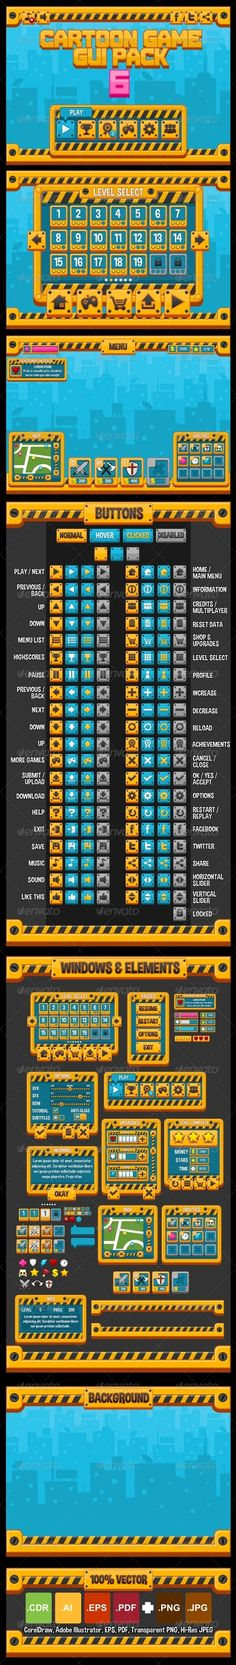 Cartoon Games GUI Pack 6  #GraphicRiver         A complete set of graphical user interface (GUI) to build 2D video games.   Suitable for city construction, simulation, rampage, builder, demolition, urban, racing, industrial, or factory game theme.   - 42 iconic buttons   - Text mode and level buttons also provided   - Pre-made windows, HUD, and other elements   - Bonus background   - Full vector. So it's customizable and resizeable.   - Text is not editable & font is not included…